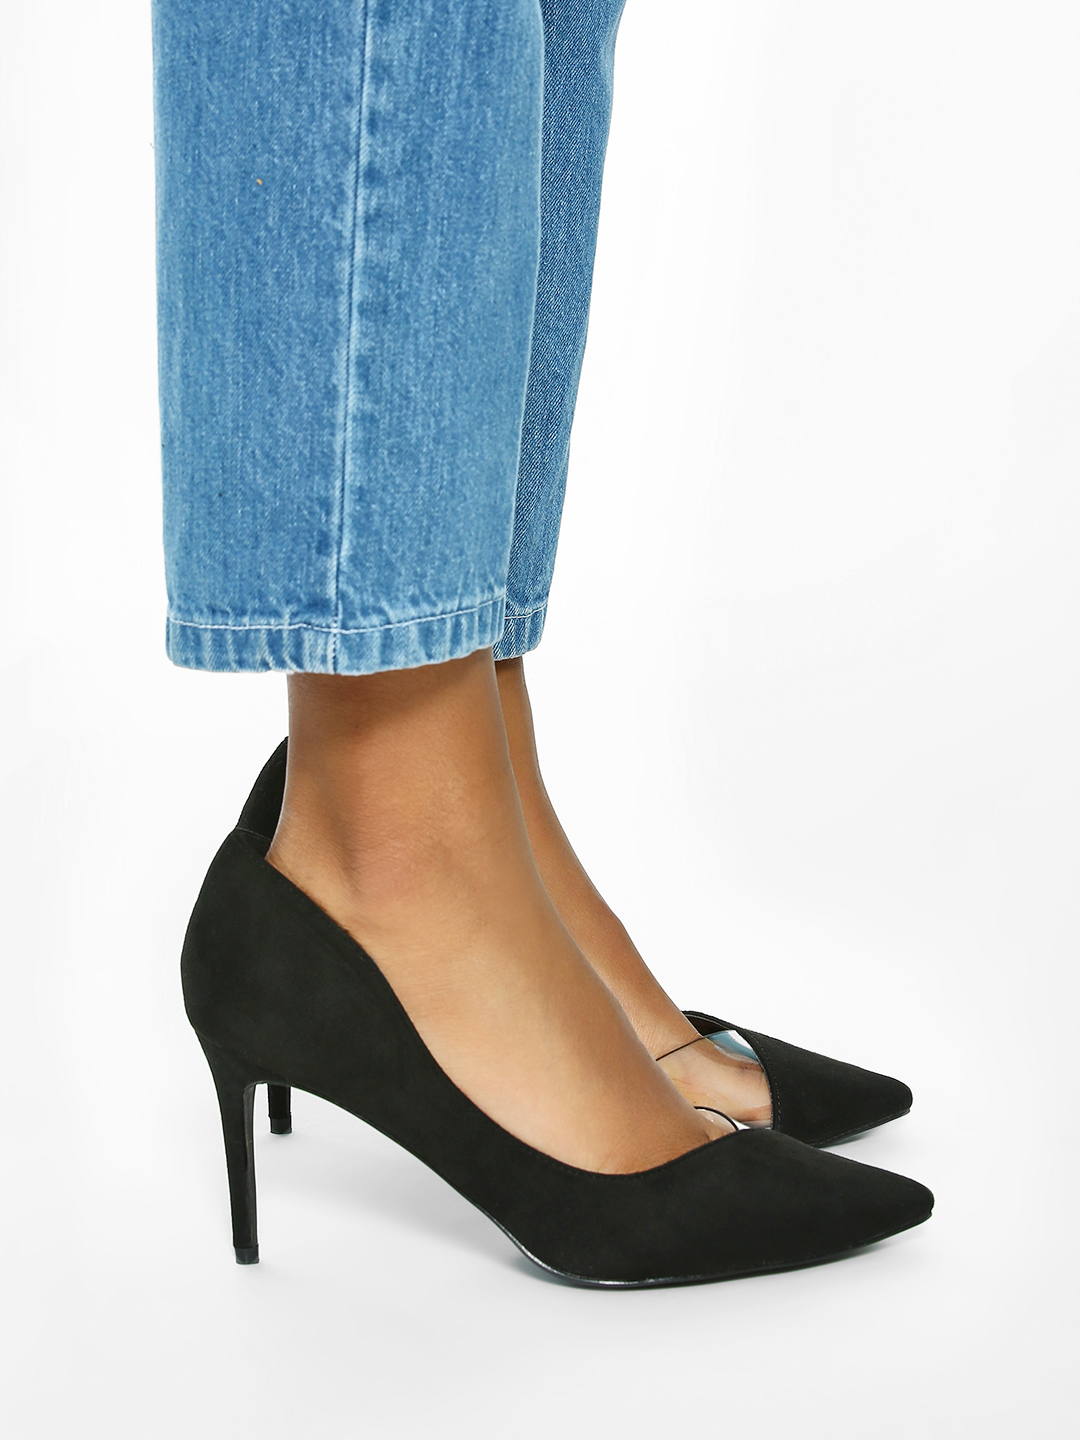 Intoto Black Half Clear Toe Suede Pumps 1